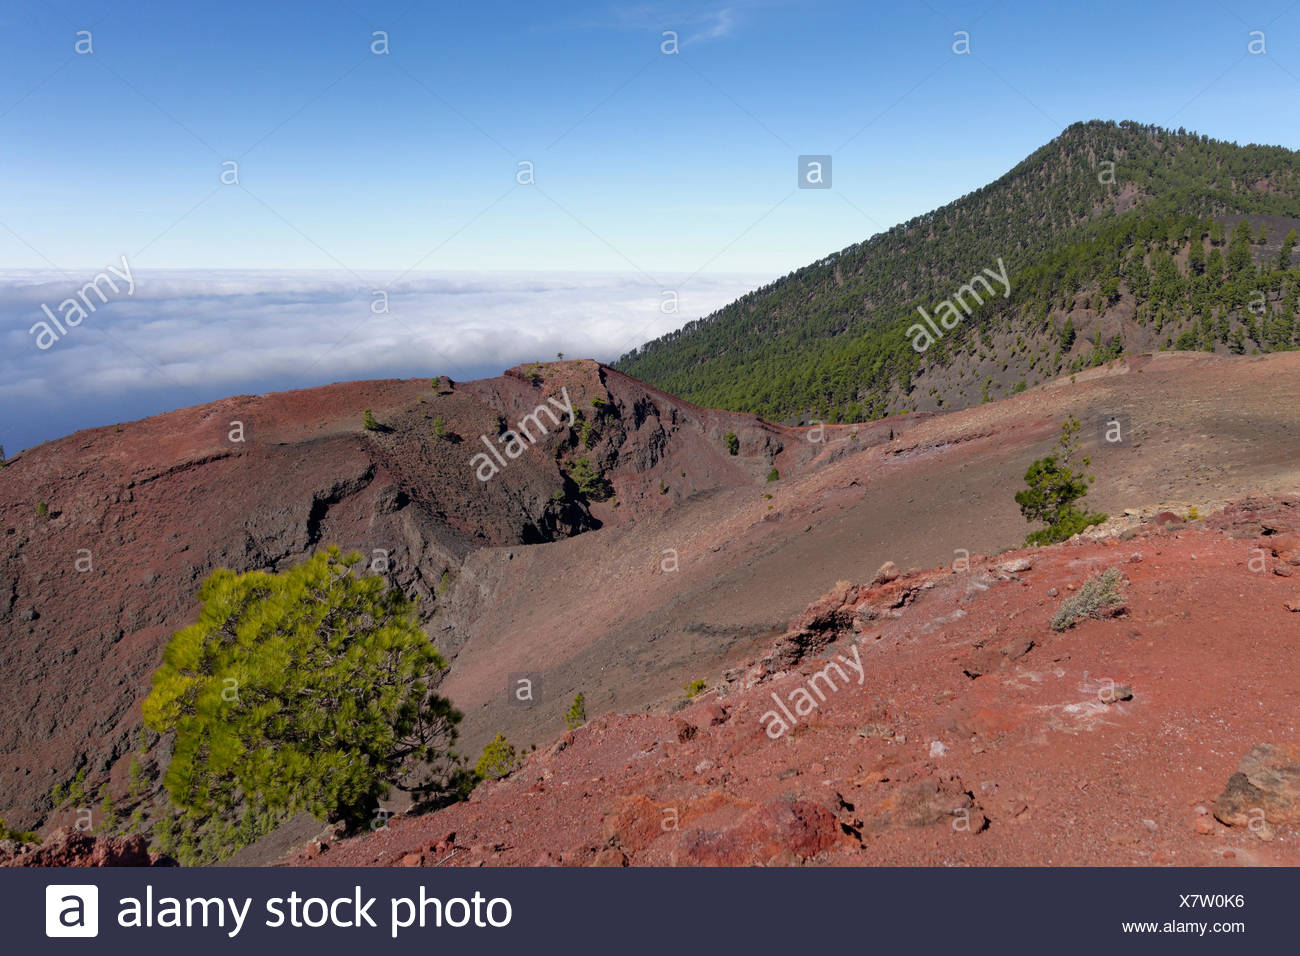 Crater of the volcano San Martín, Cumbre Vieja in Fuencaliente, La Palma, Canary Islands, Spain - Stock Image